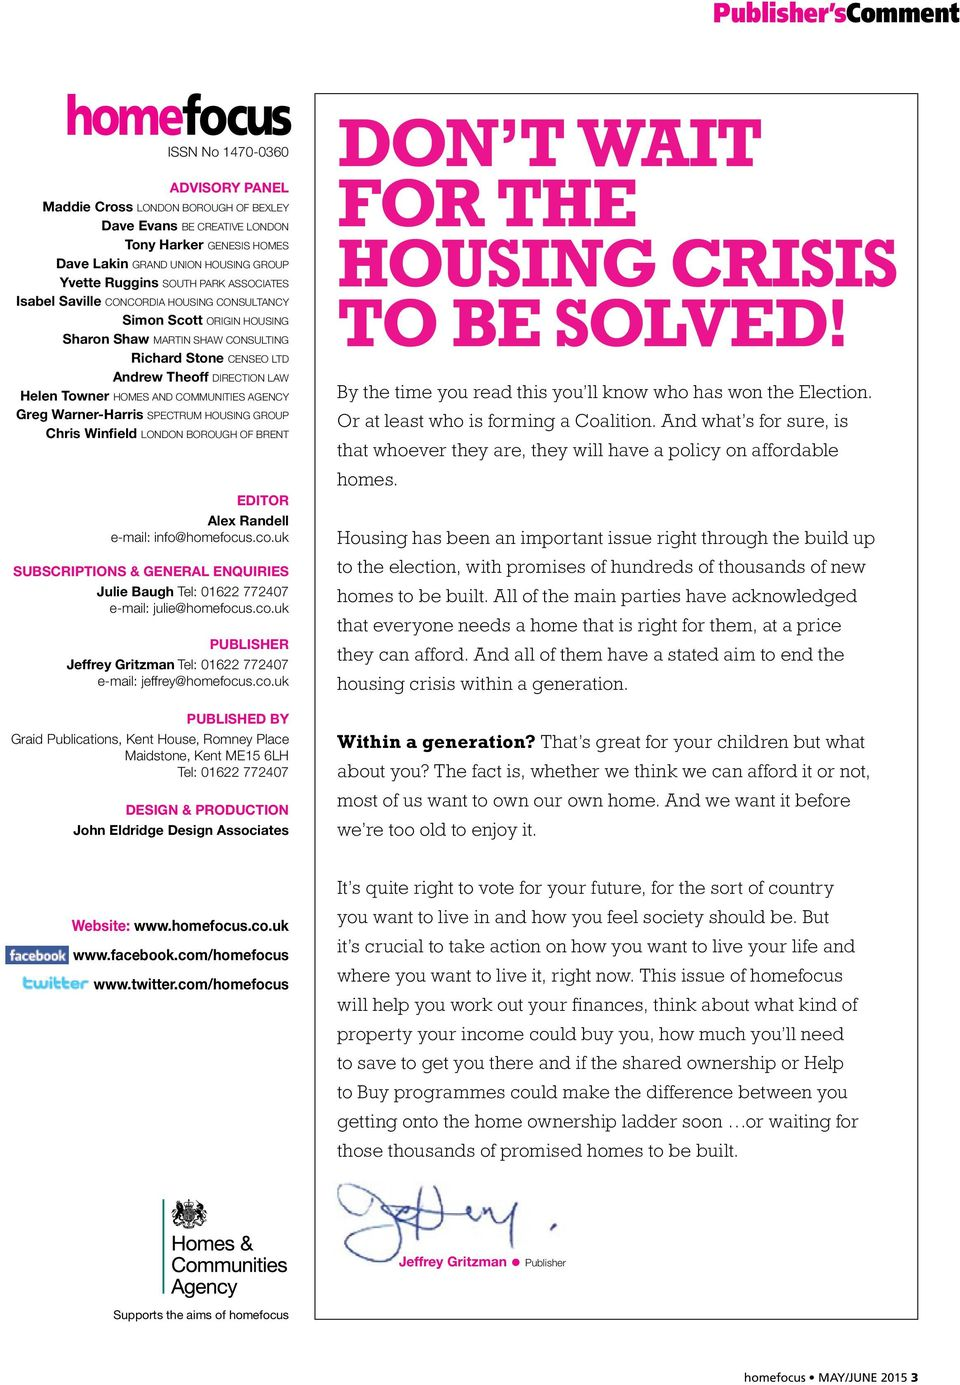 Towner HOMES AND COMMUNITIES AGENCY Greg Warner-Harris SPECTRUM HOUSING GROUP Chris Winfield LONDON BOROUGH OF BRENT EDITOR Alex Randell e-mail: info@homefocus.co.